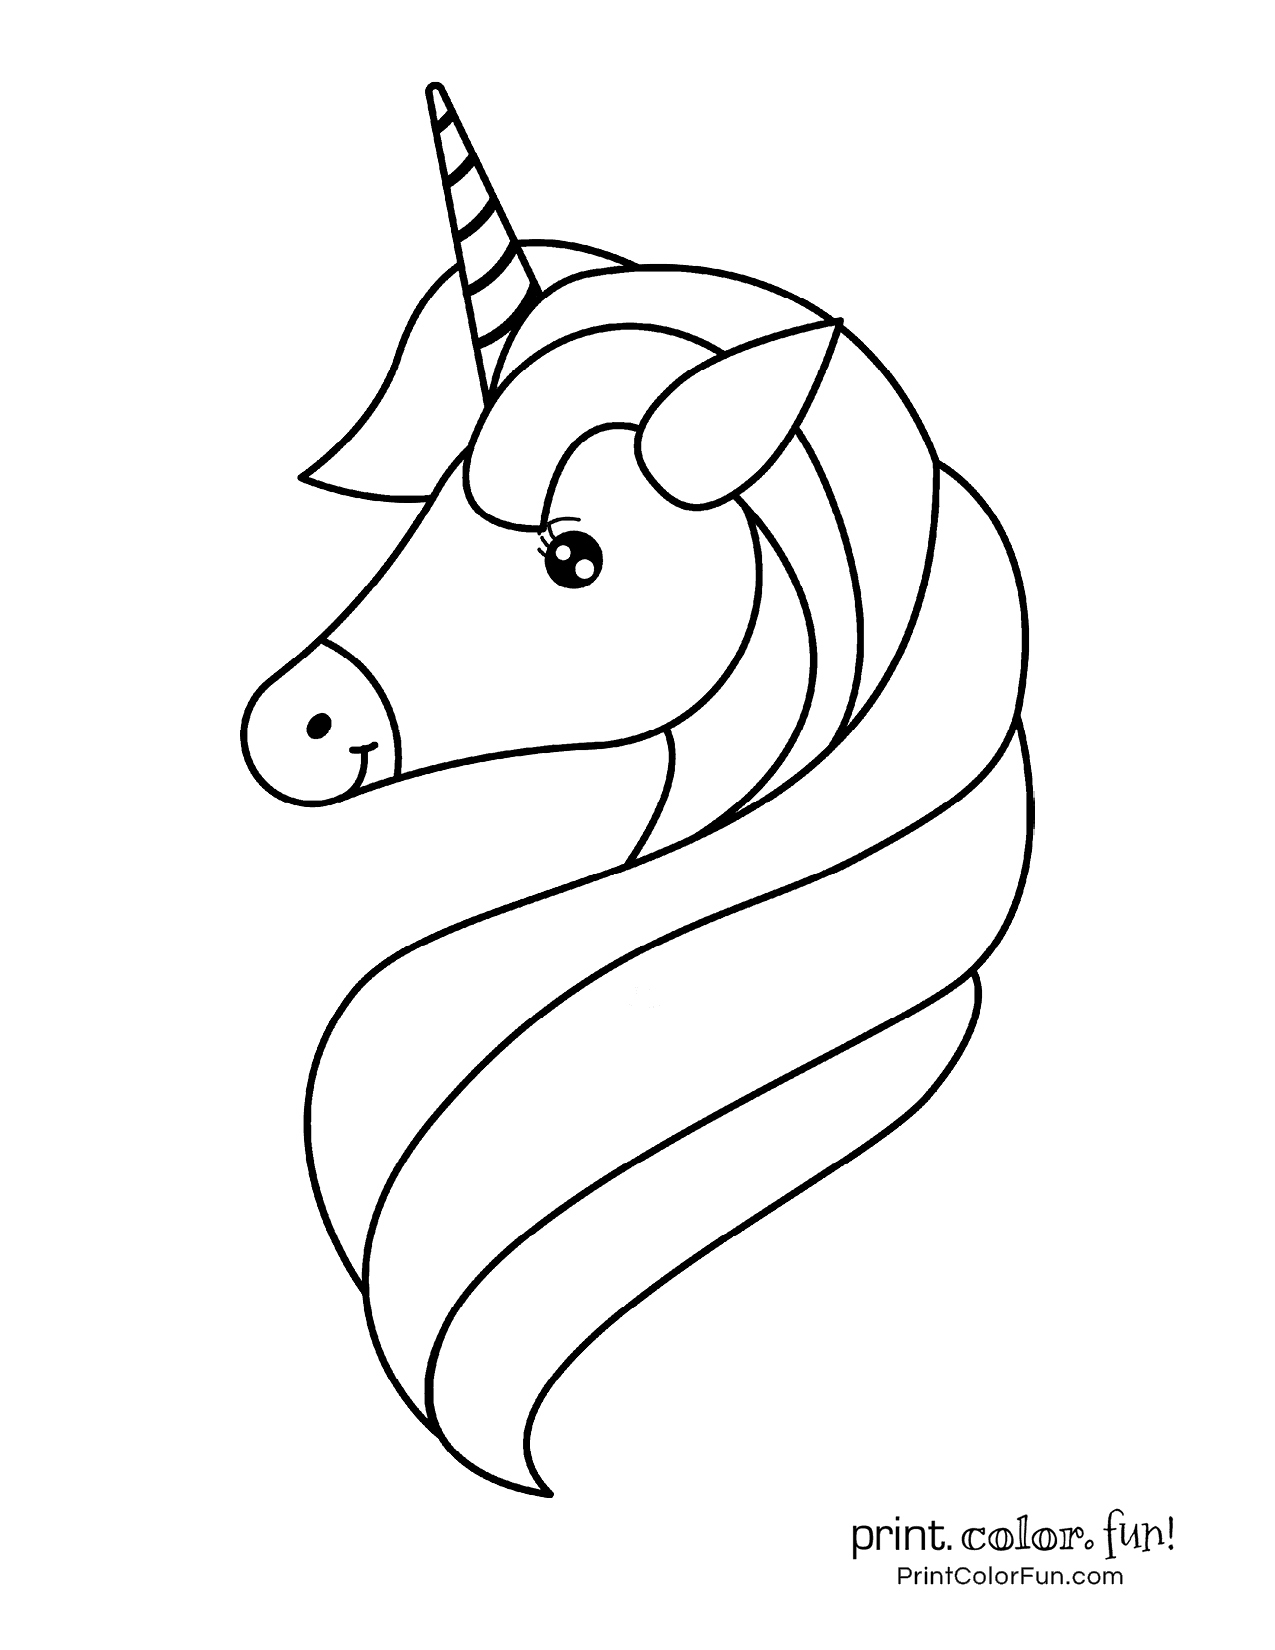 100 Magical Unicorn Coloring Pages The Ultimate Free Printable Collection At Print Color Fun Co Unicorn Coloring Pages Coloring Pages Heart Coloring Pages